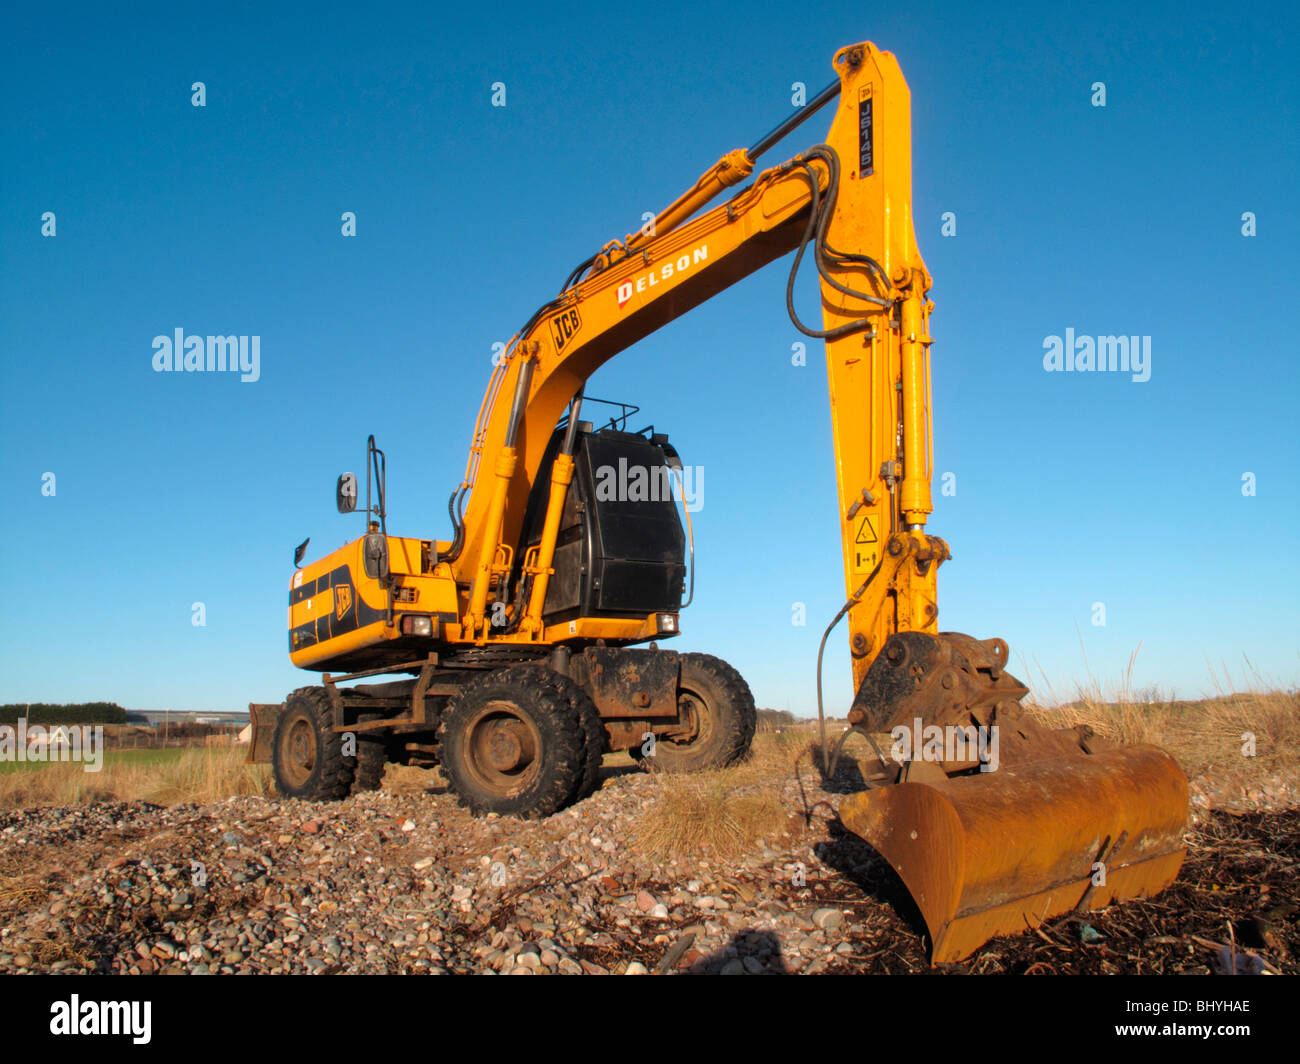 A JCB delson digger clears rubble and rocks from a collapsing river embankment. Stock Photo